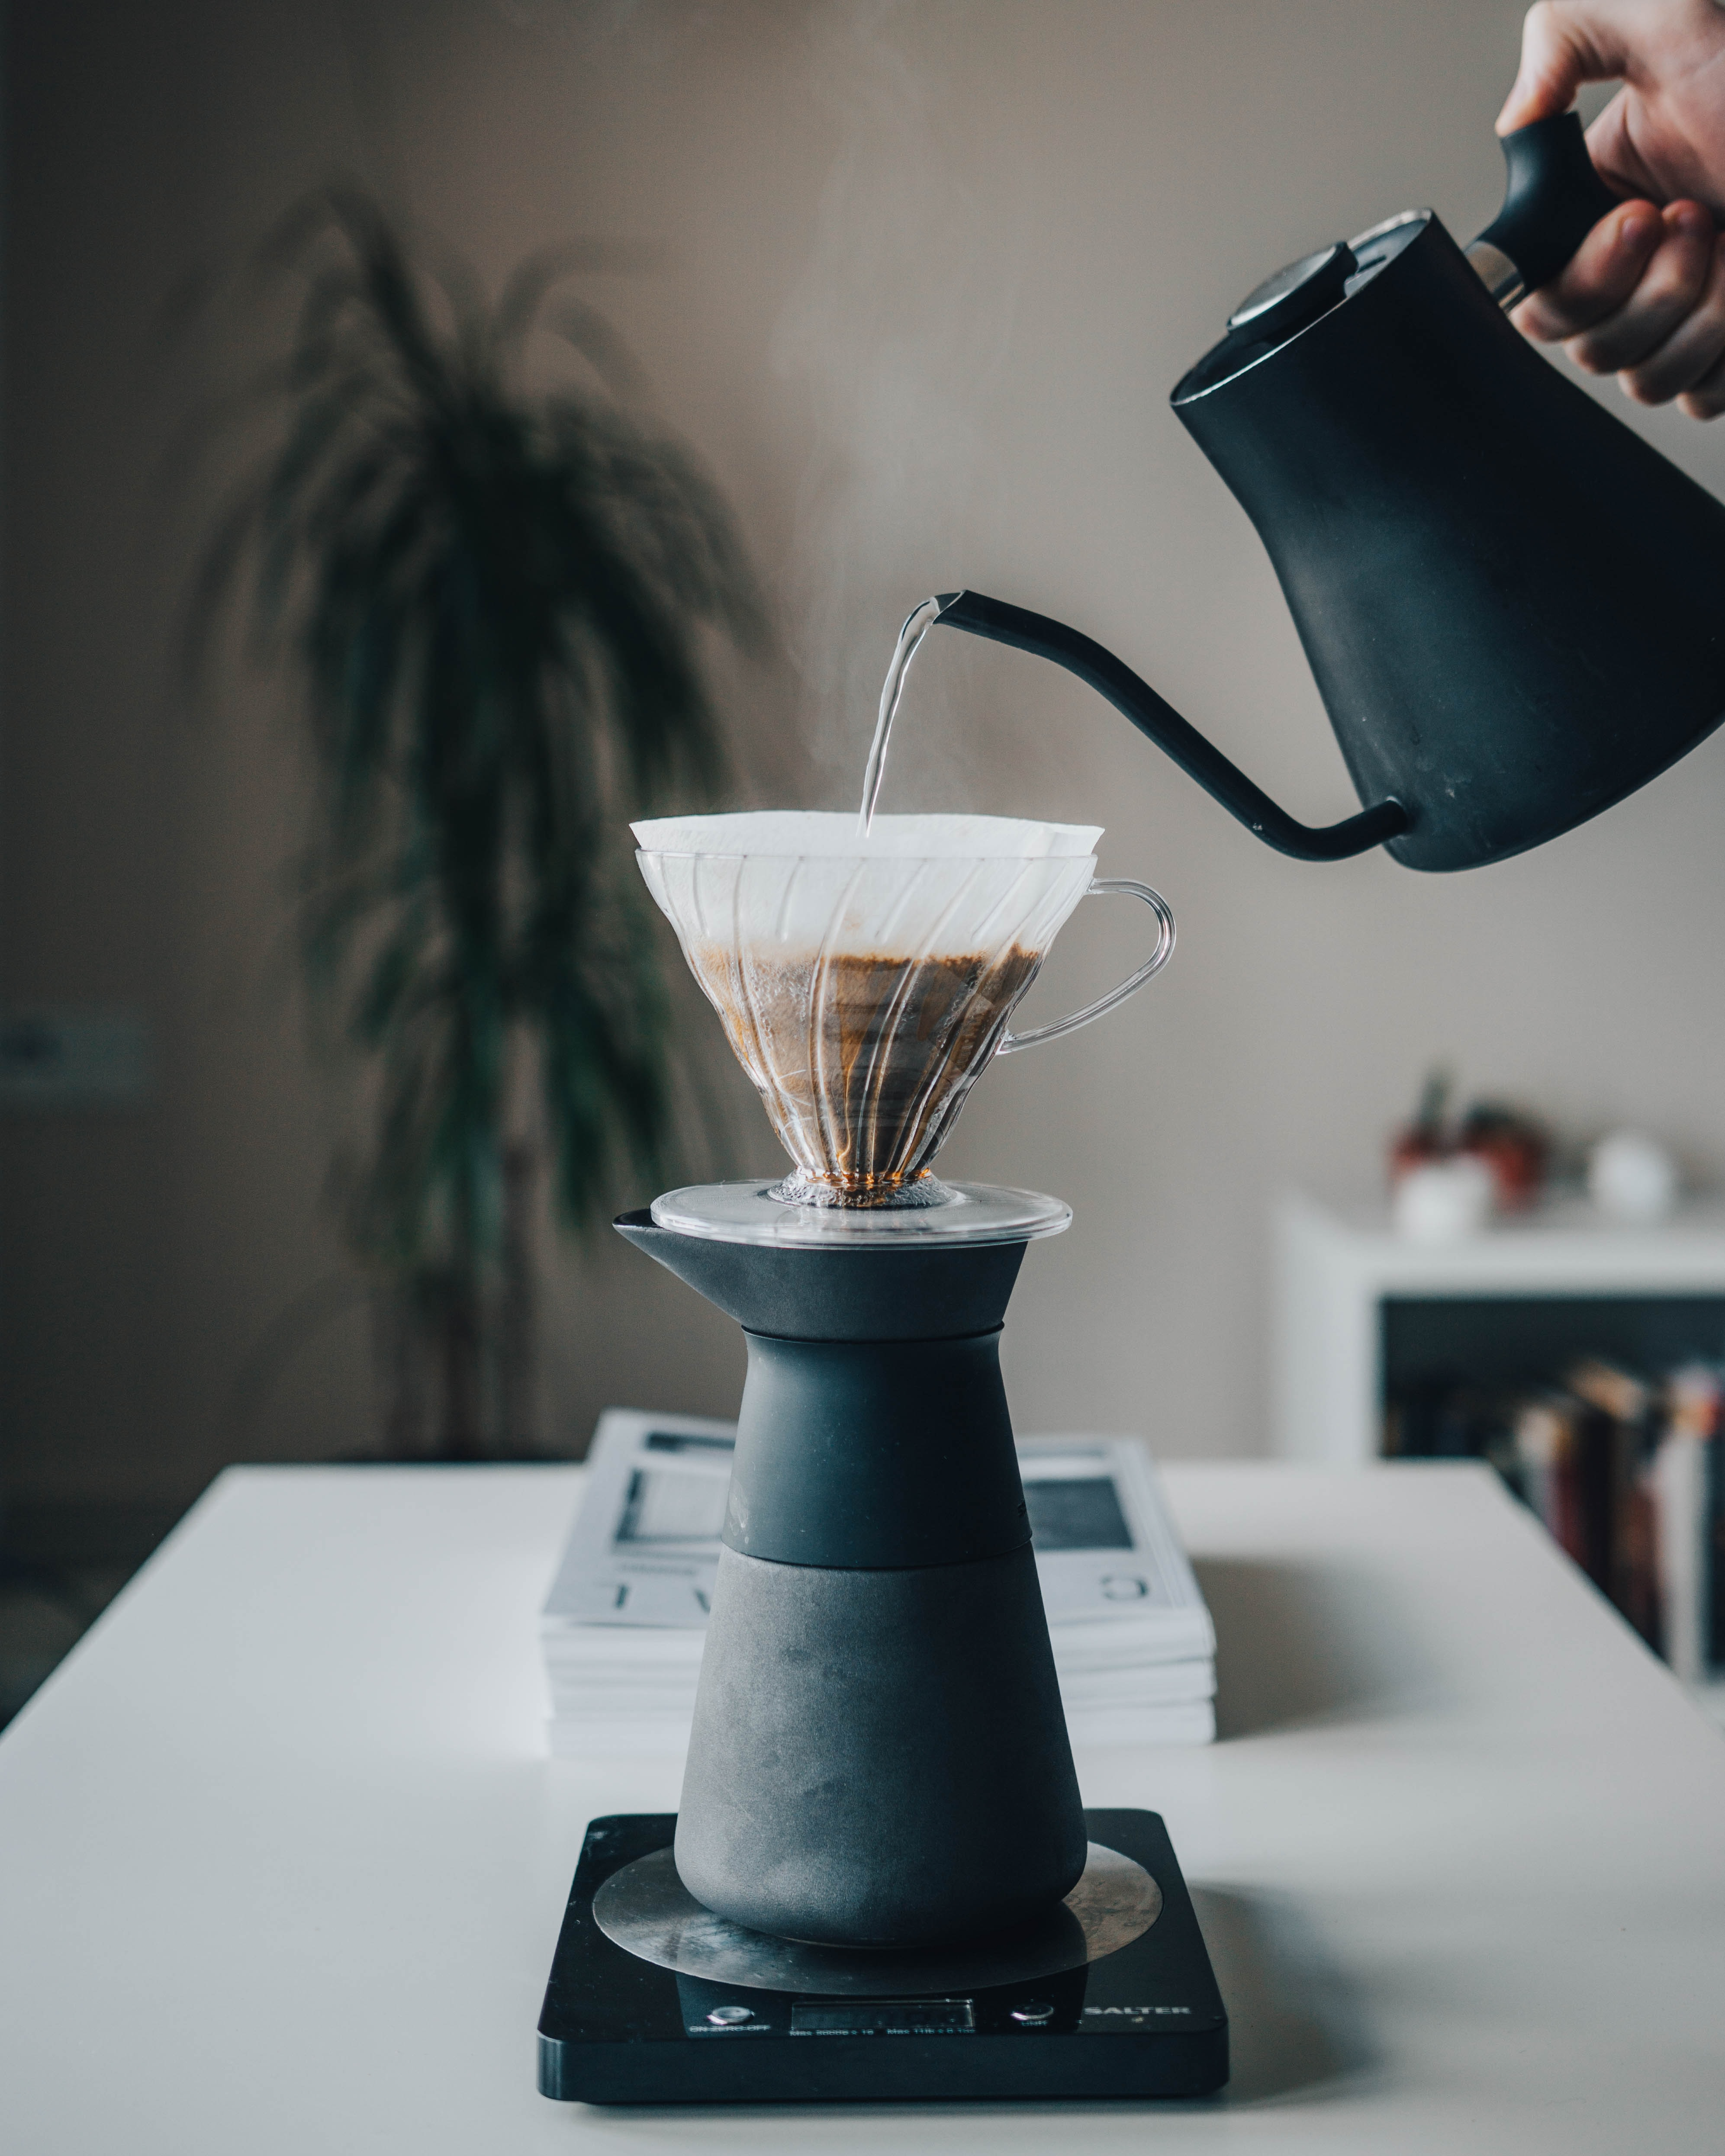 person pouring hot water on pour-over coffee maker